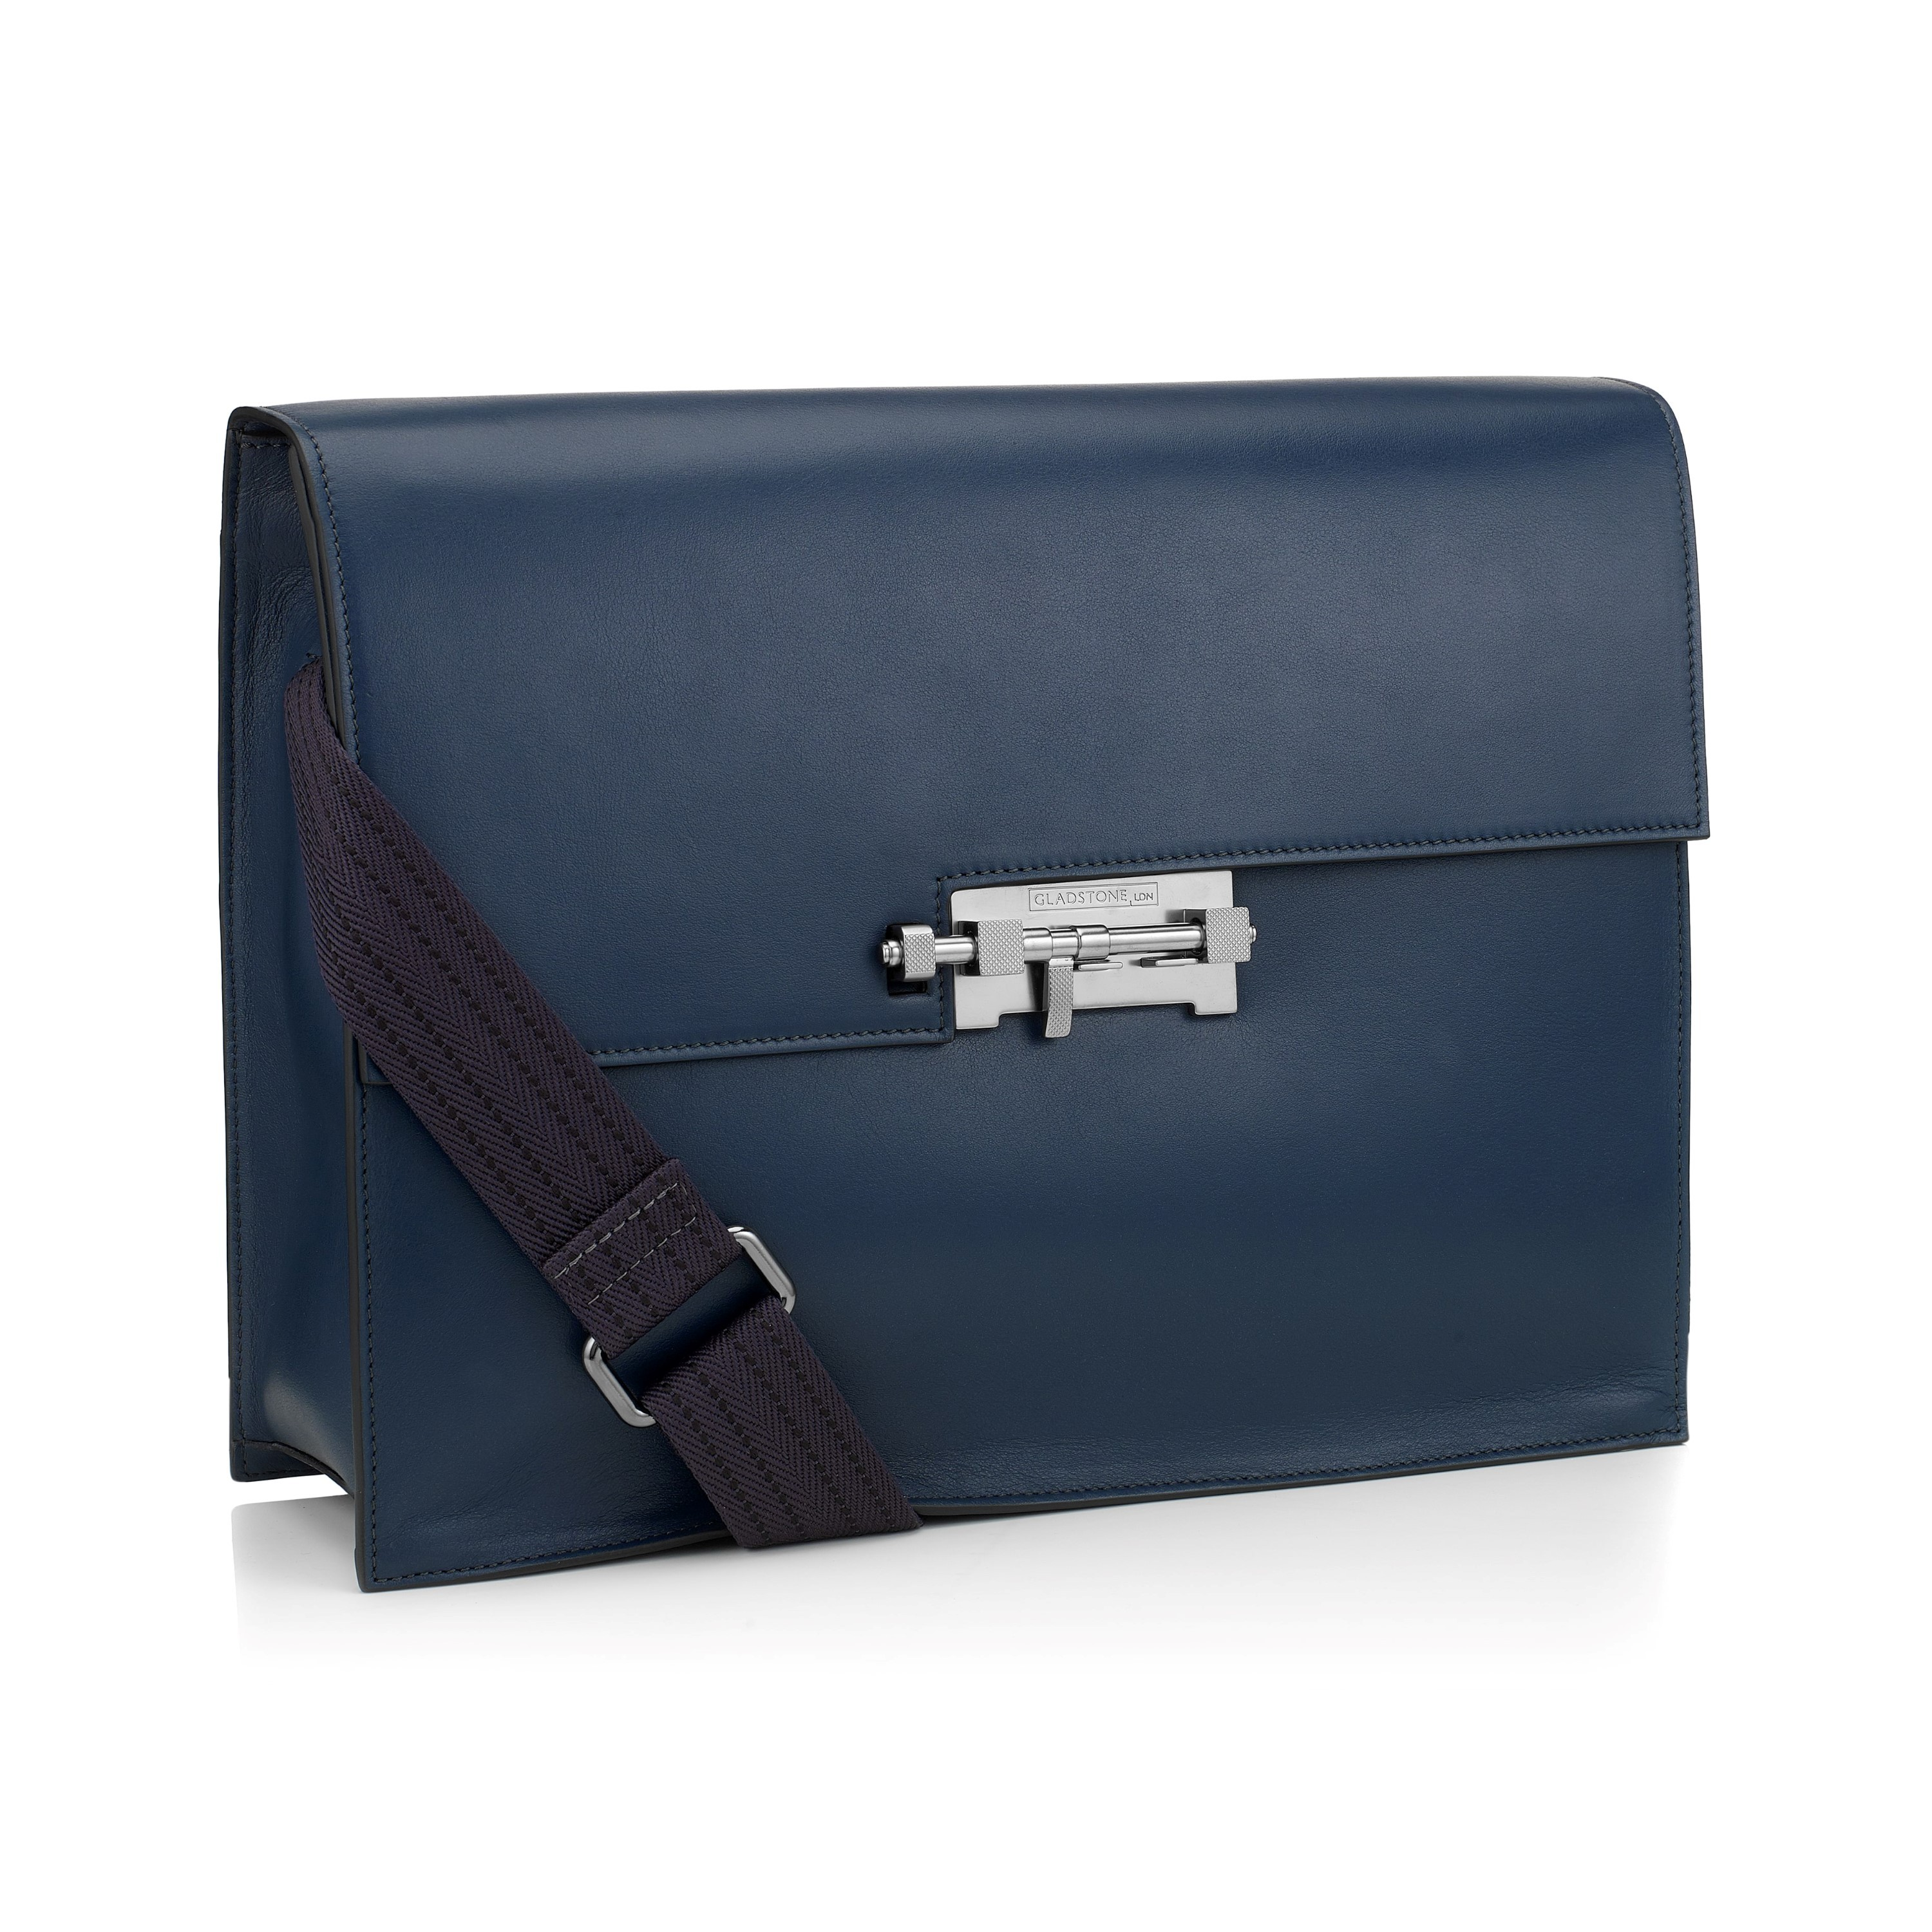 G12 Messenger Bag Ocean Blue Front Side